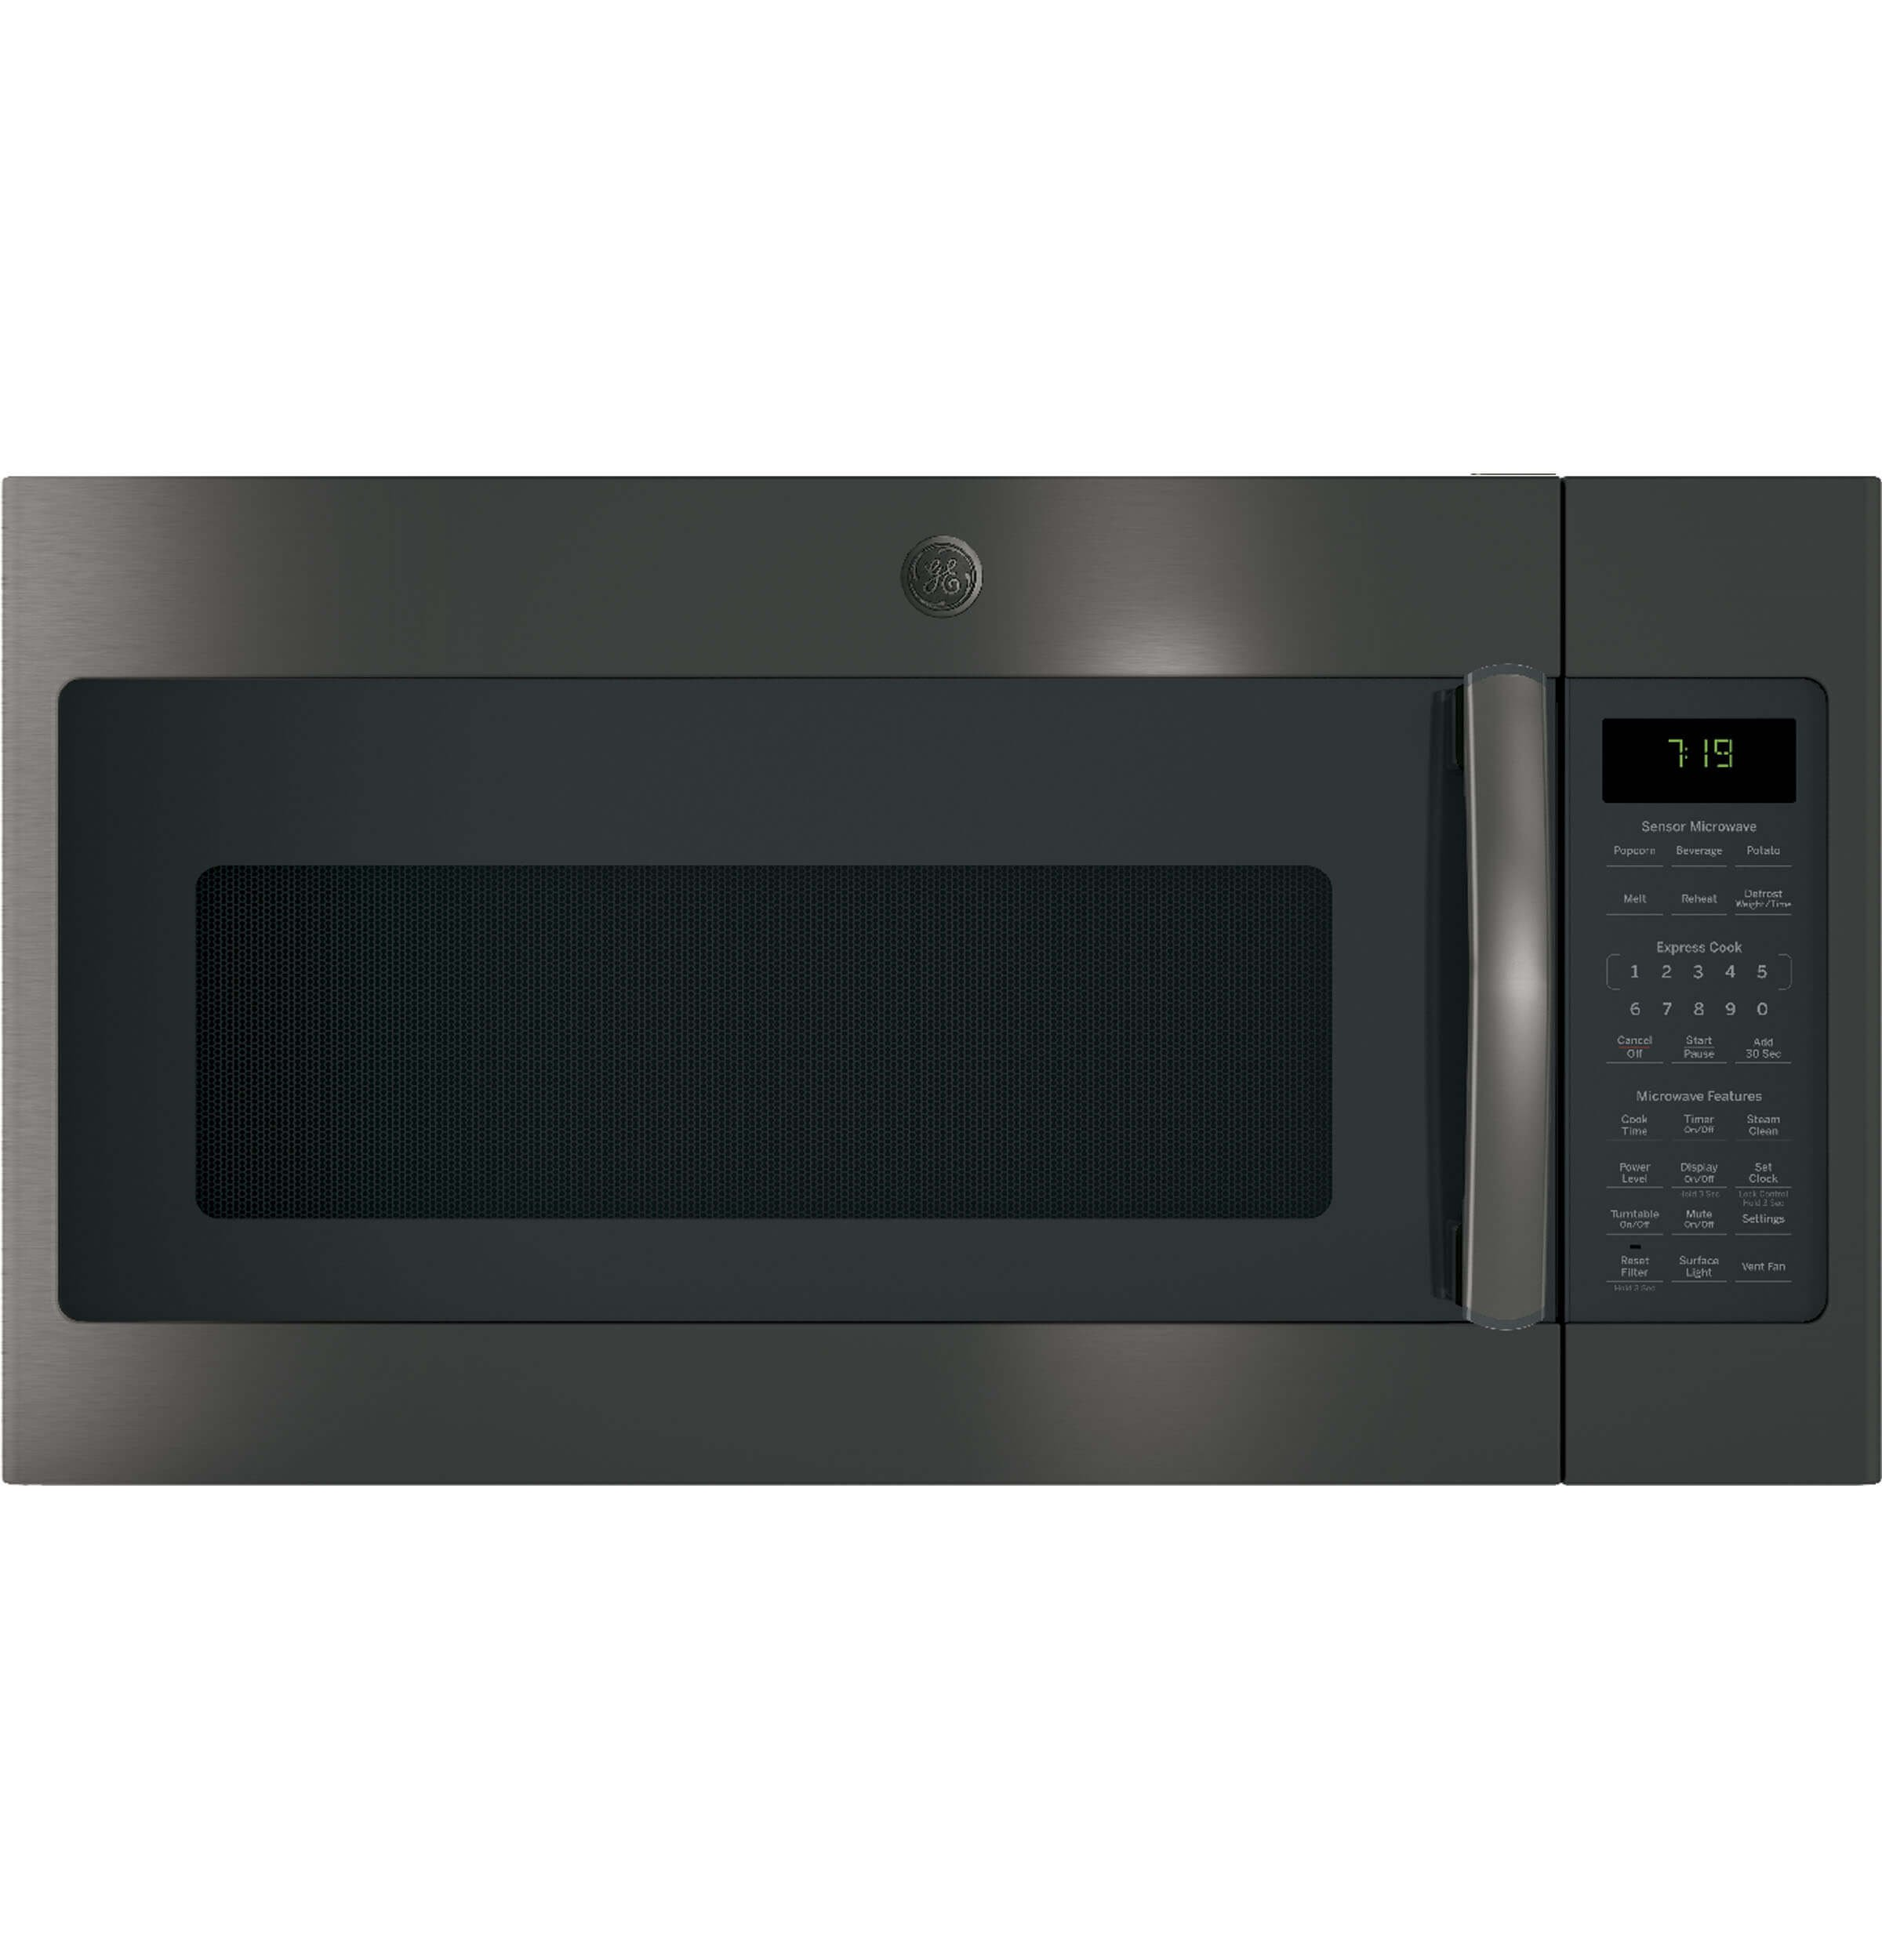 GE JVM7195BLTS Microwave Oven